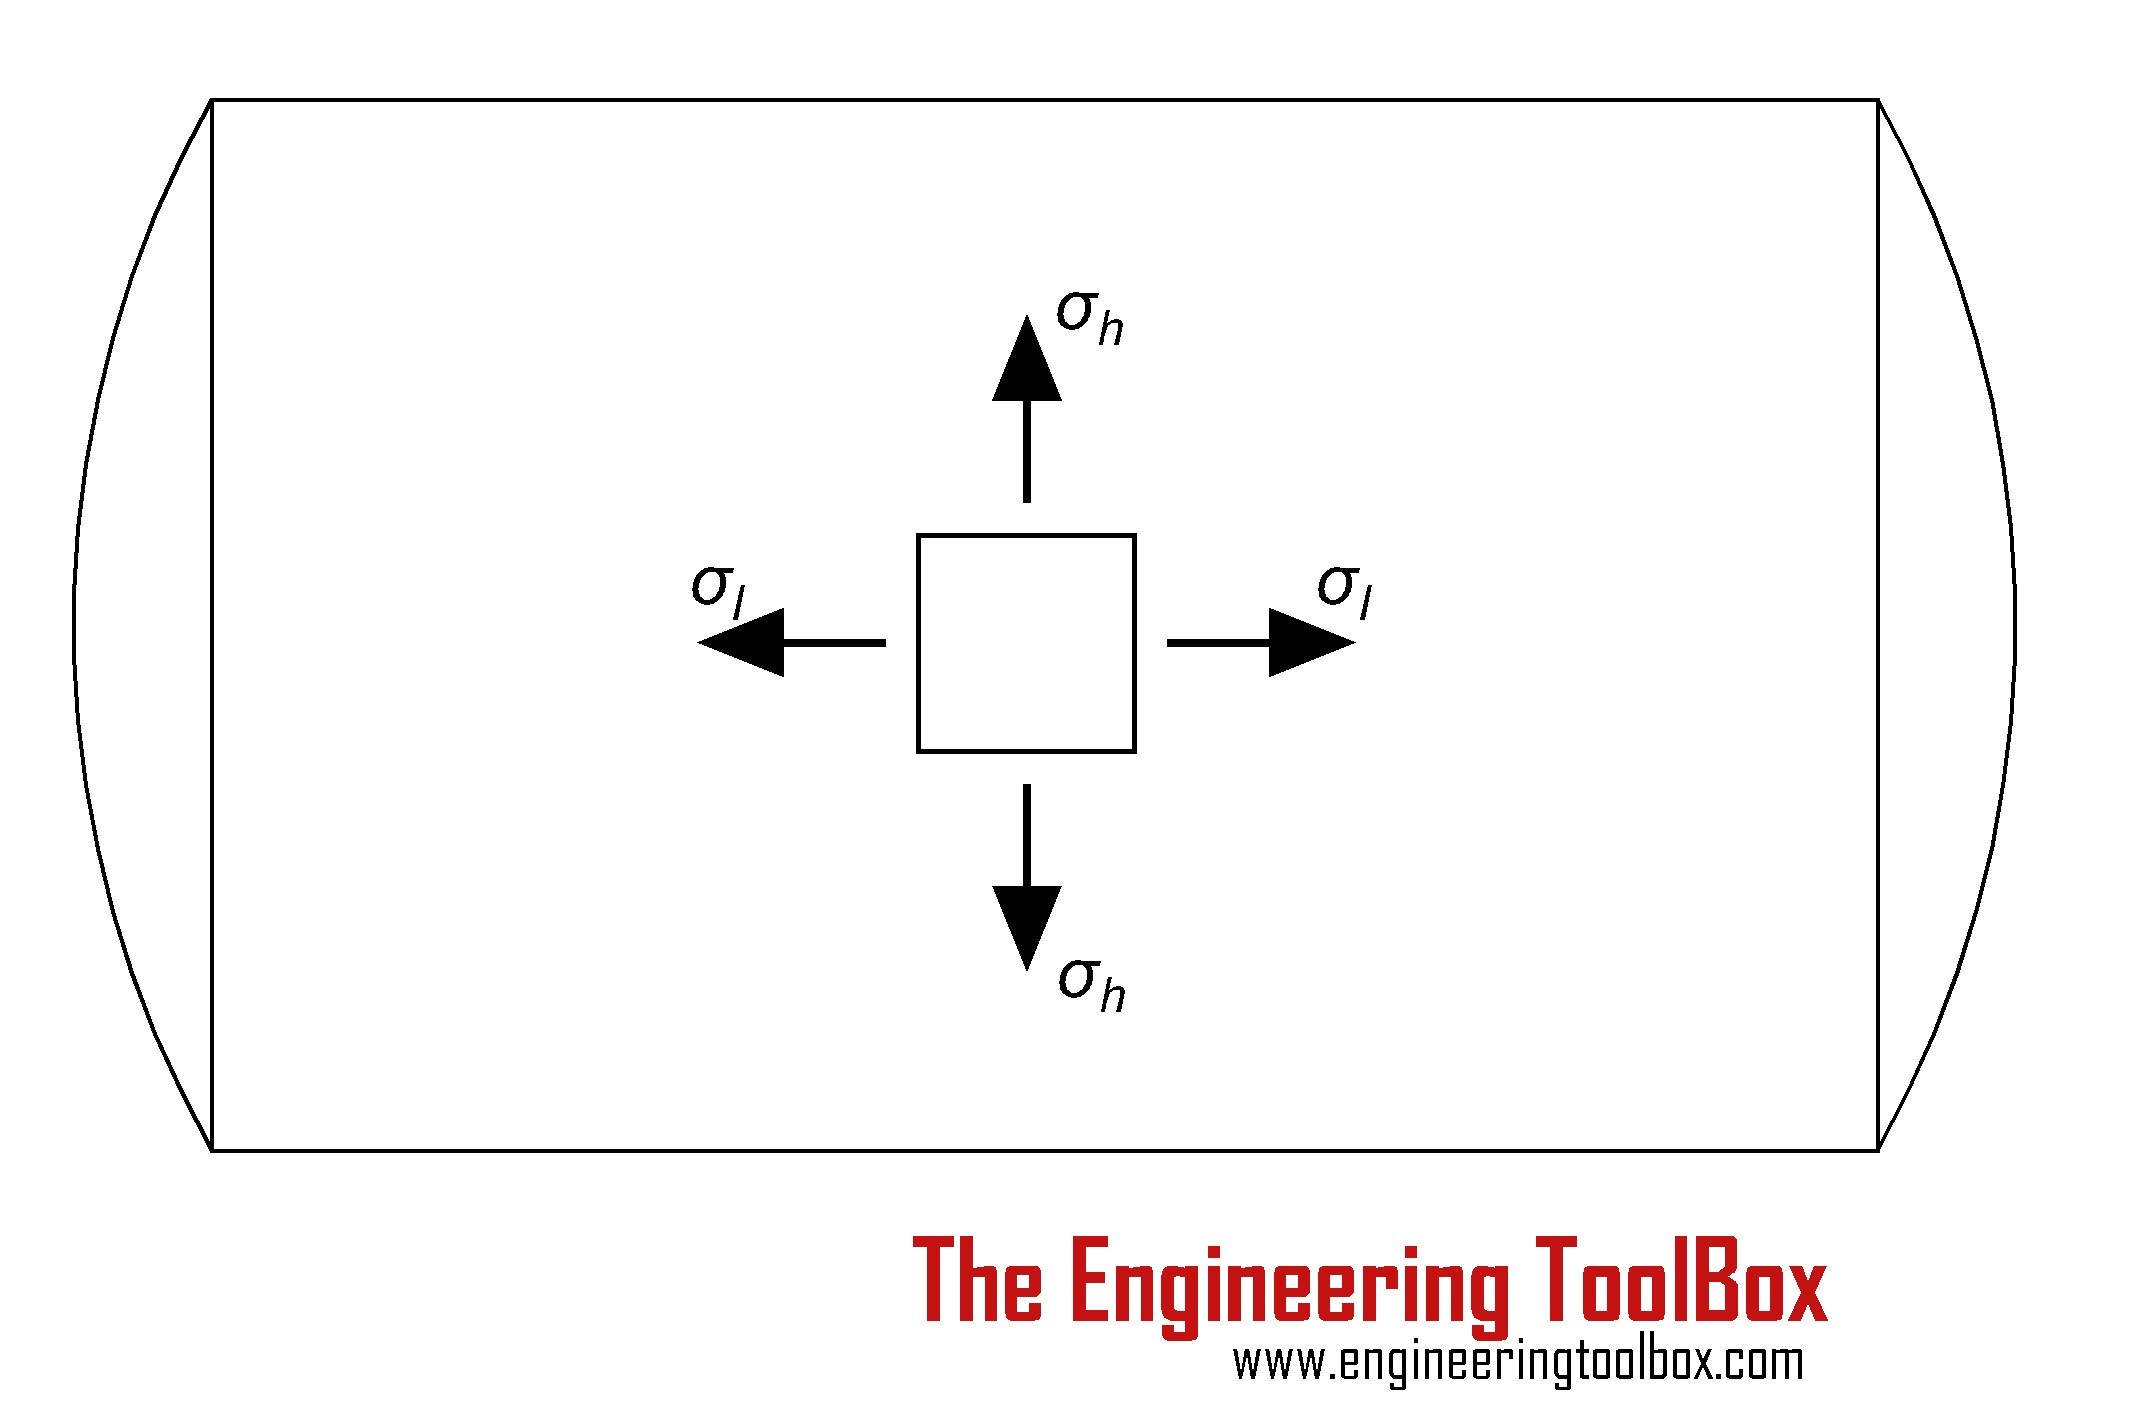 Free Body Diagram In Engineering Mechanics Stress In Thin Walled Tubes or Cylinders Of Free Body Diagram In Engineering Mechanics